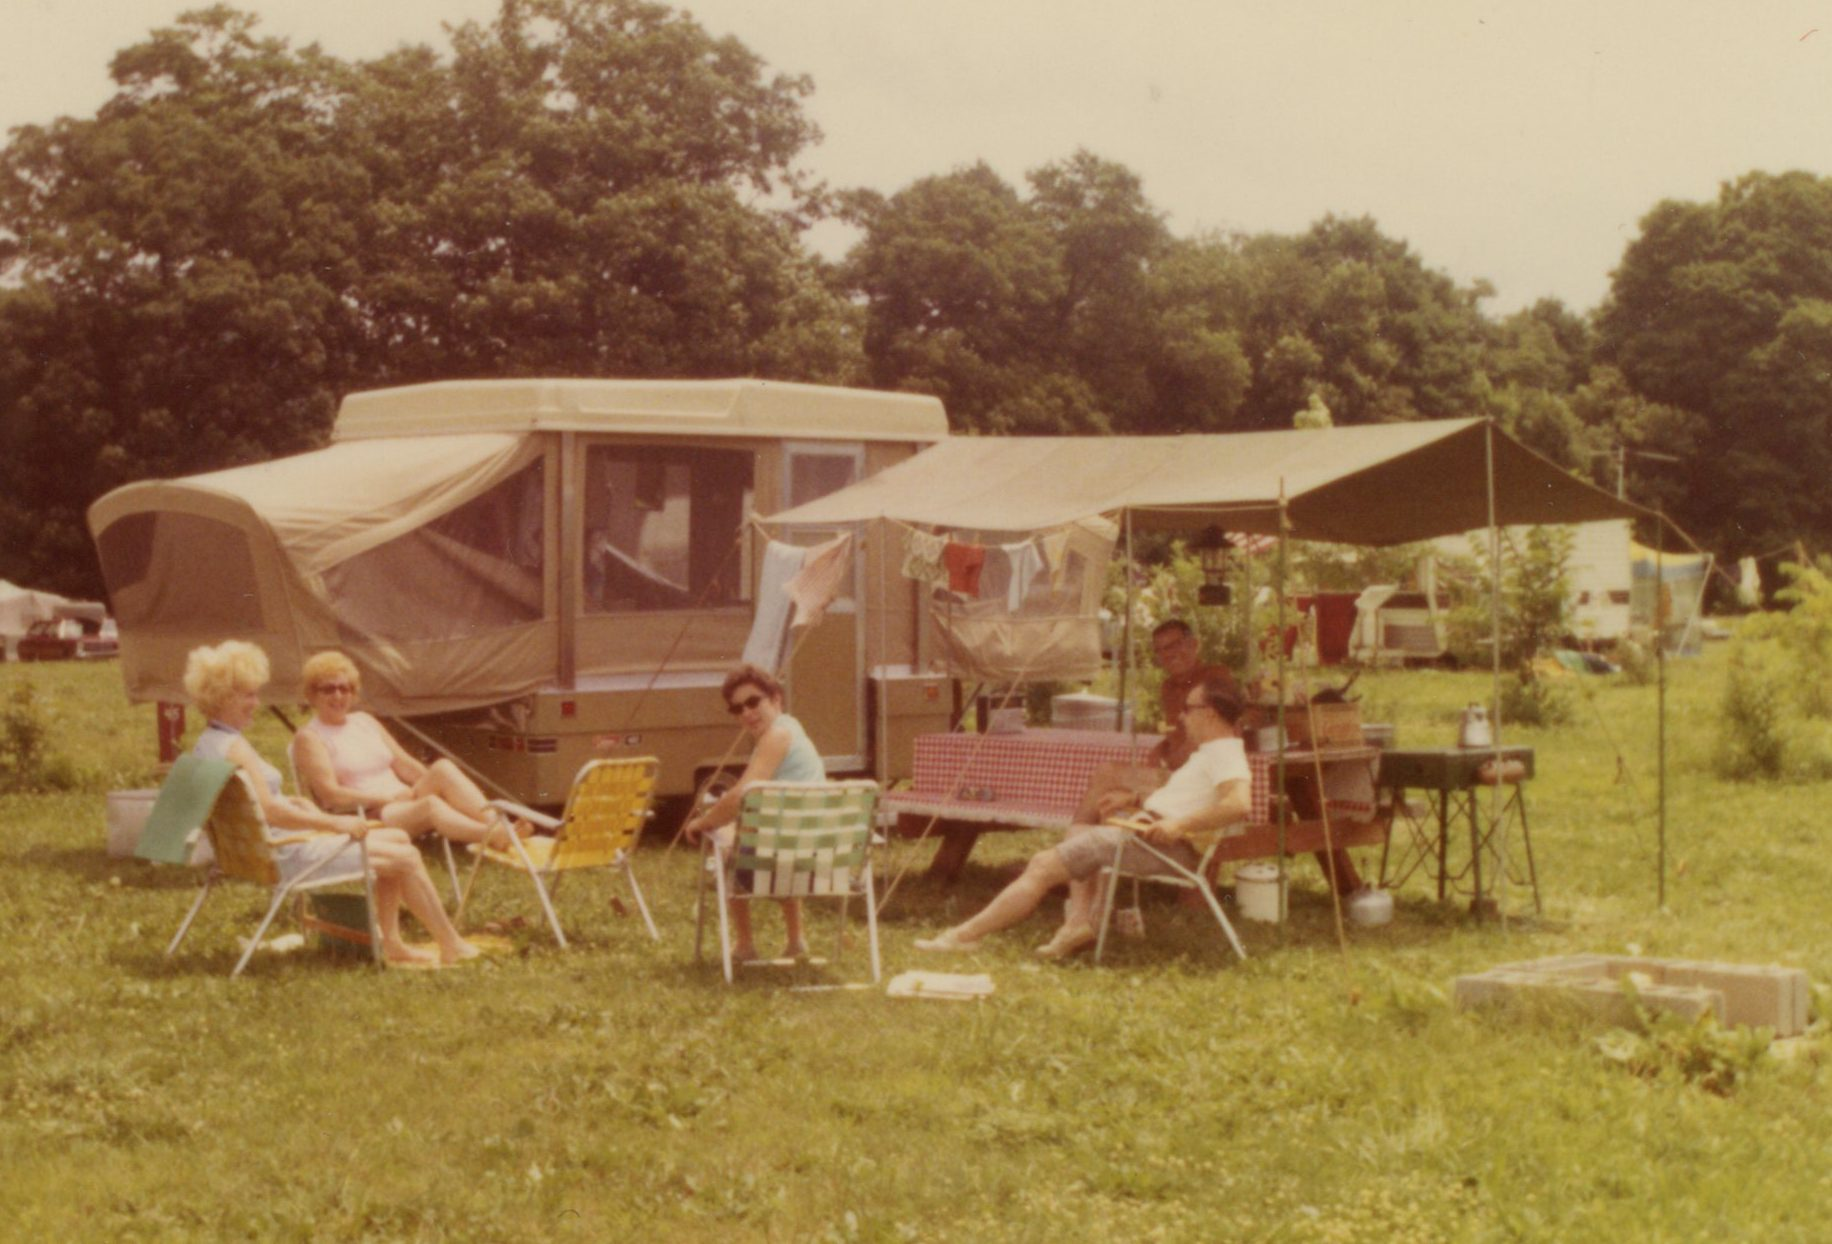 A History of Camping | Driftstone Campground Blog